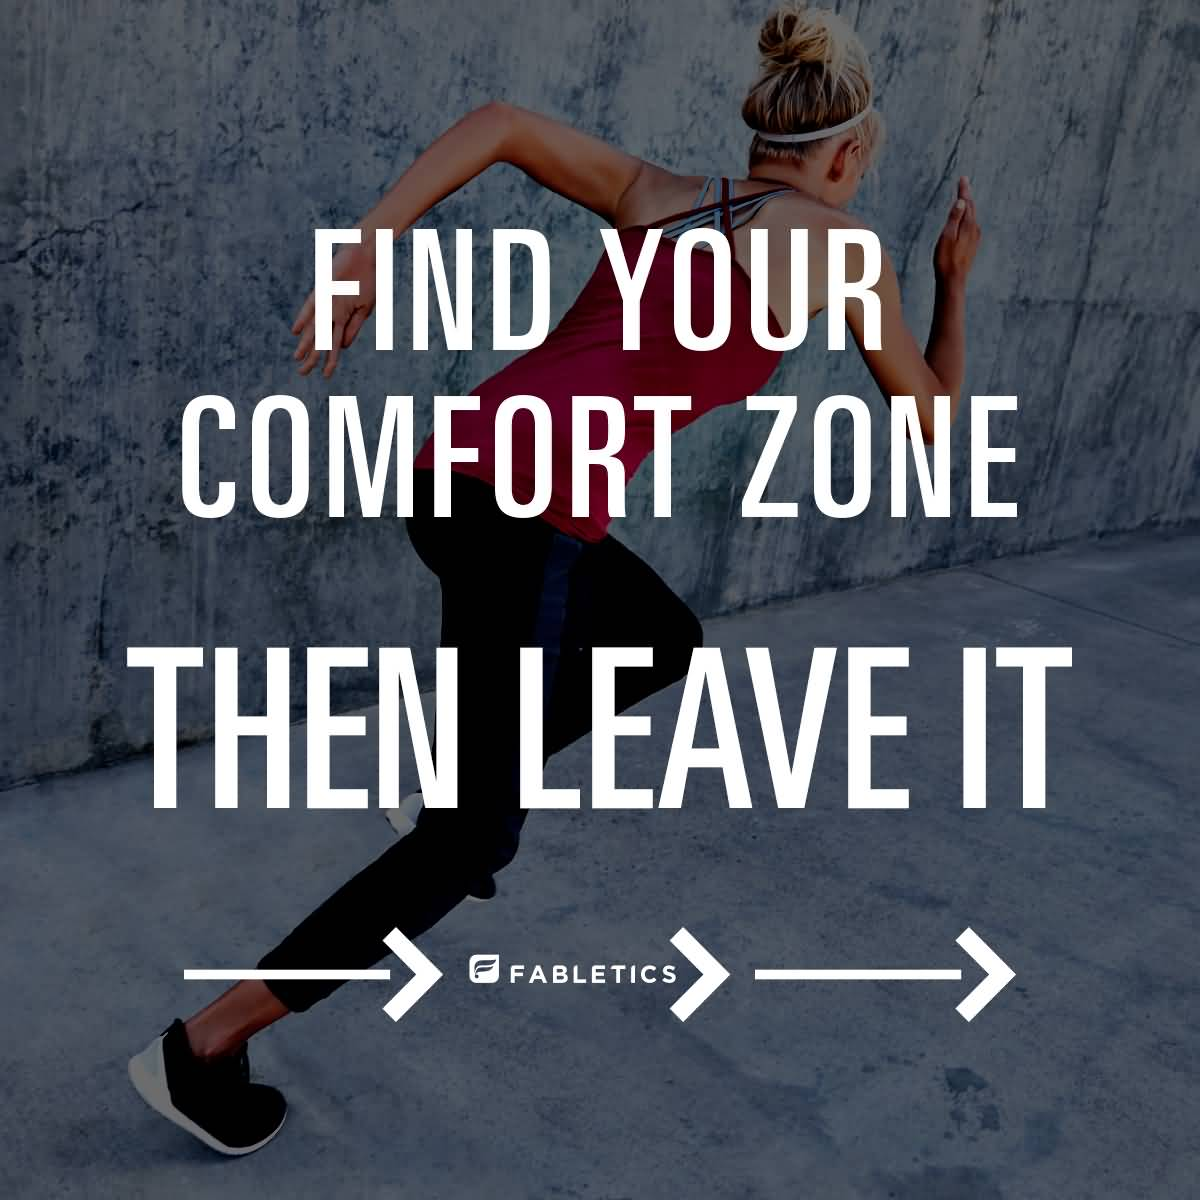 Fitness Sayings find your comfort zone then leave it.